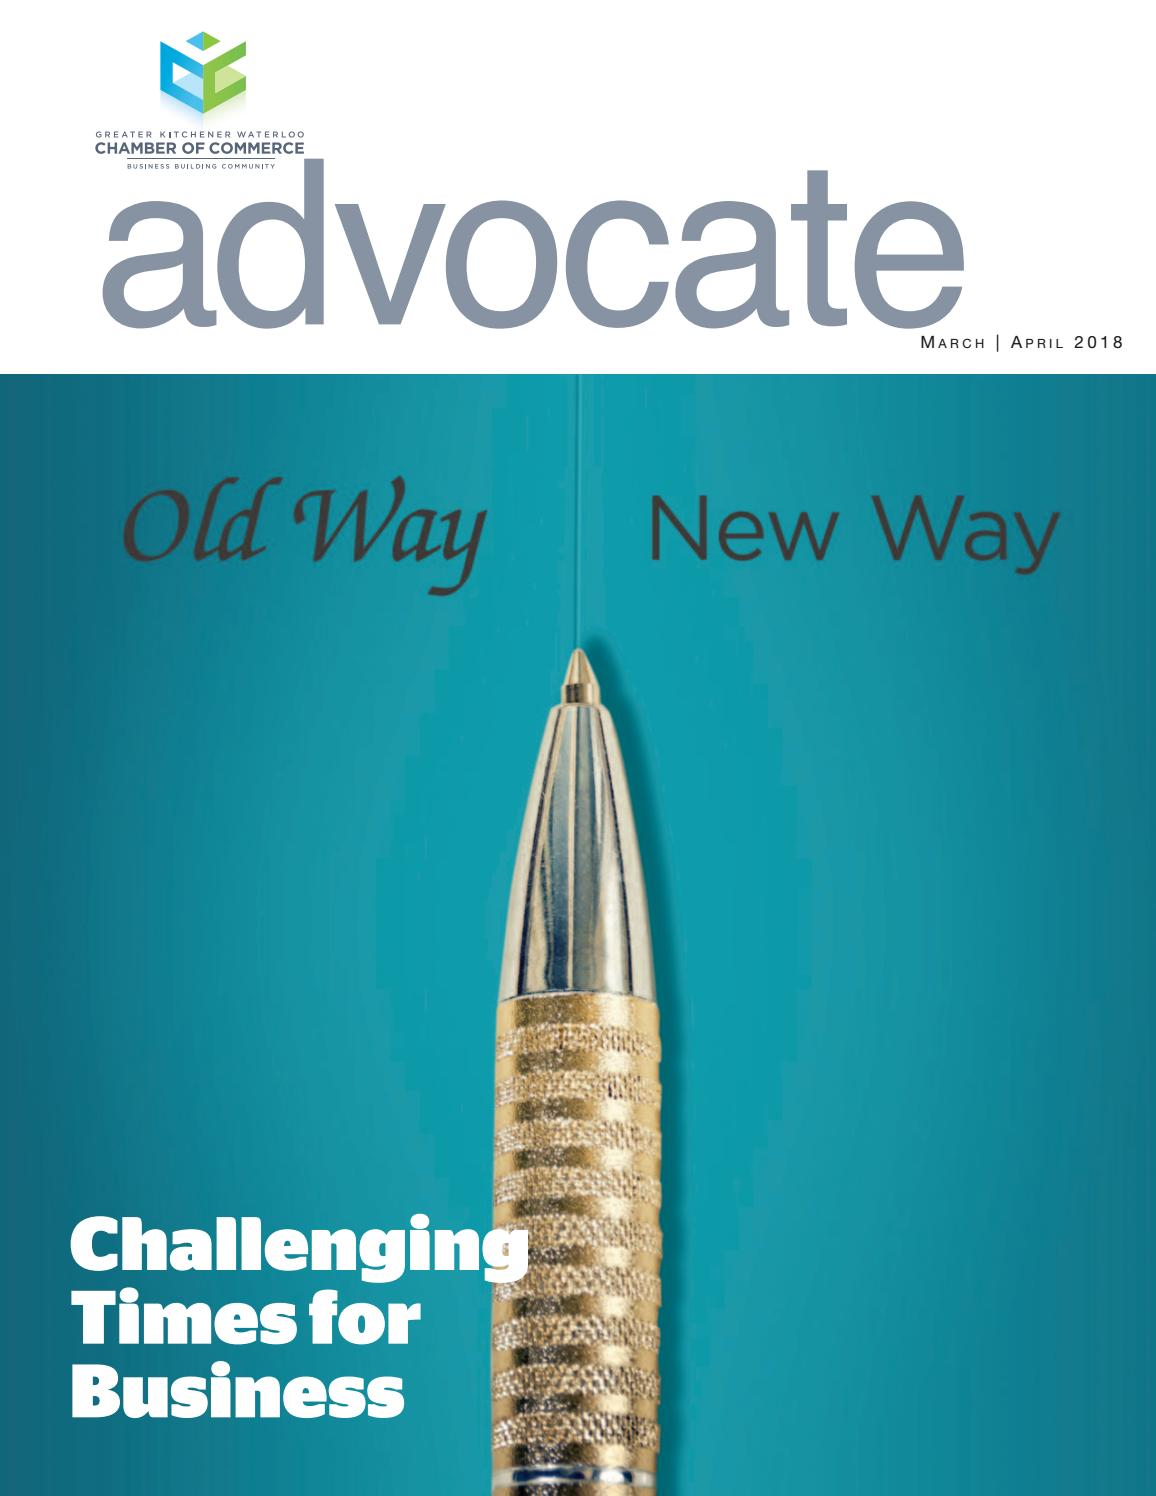 March/April 2018 Advocate by Natalie Hemmerich - issuu